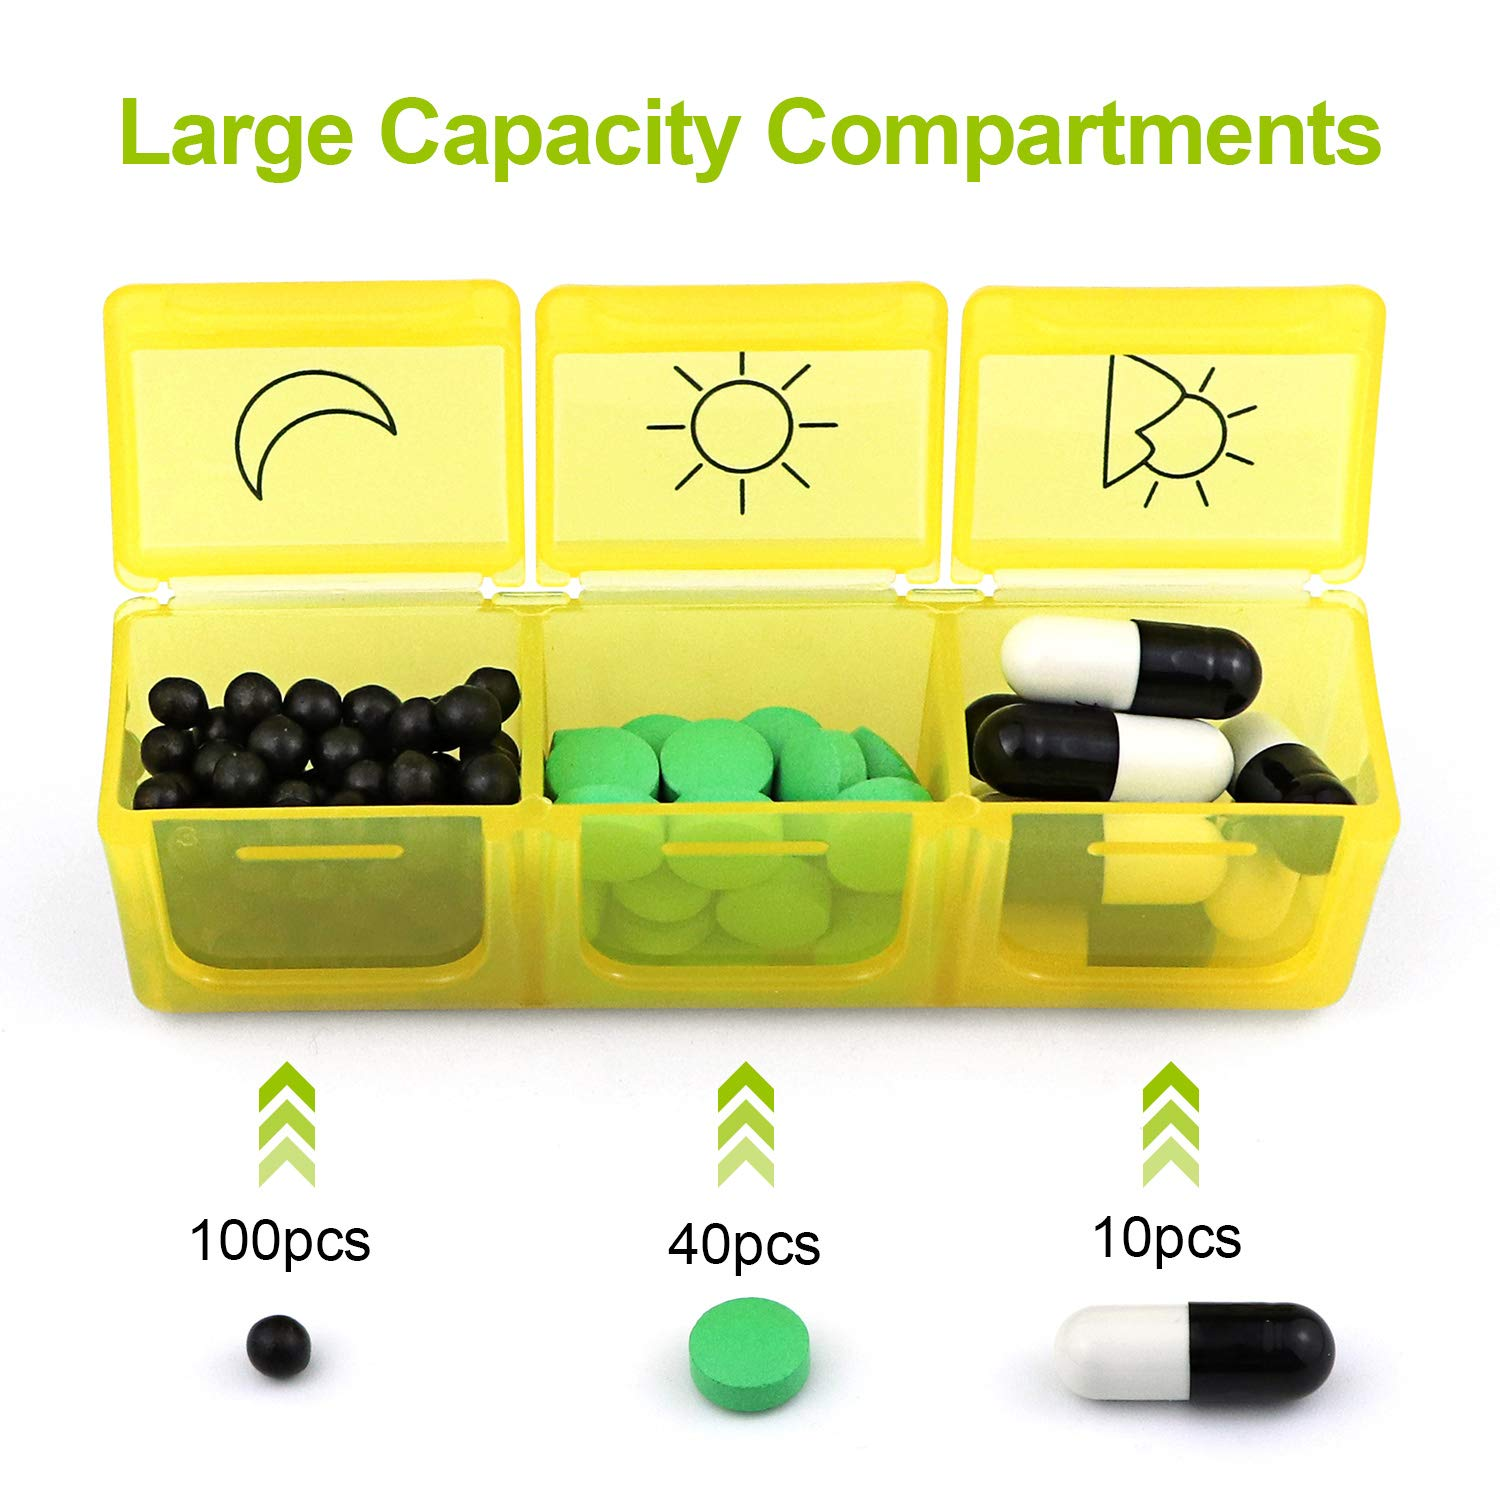 SENWOW Weekly Pill Organizer, Portable AM/PM Travel Pill Box Case (7-Day / 3-Times-A-Day) with Separate Compartments to Hold Vitamins, Supplements and Medication